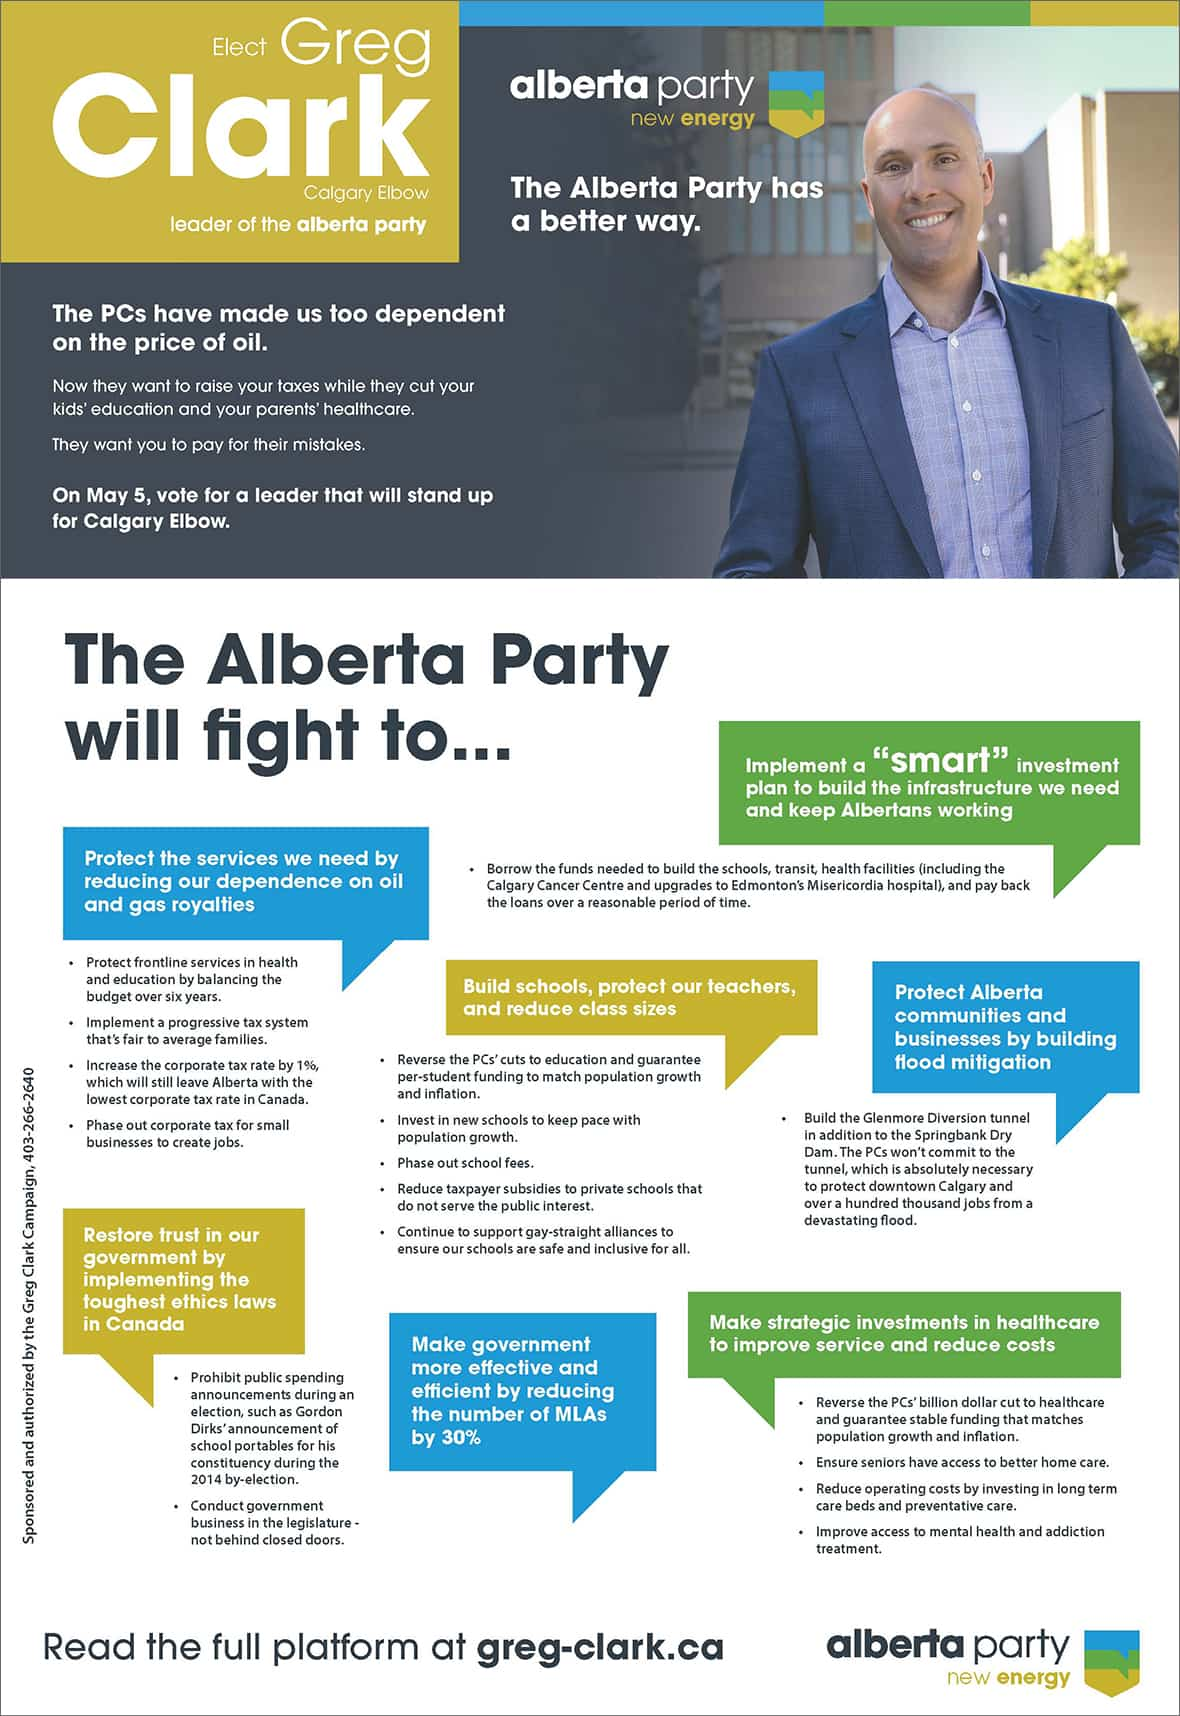 Alberta Party / Greg Clark brochure